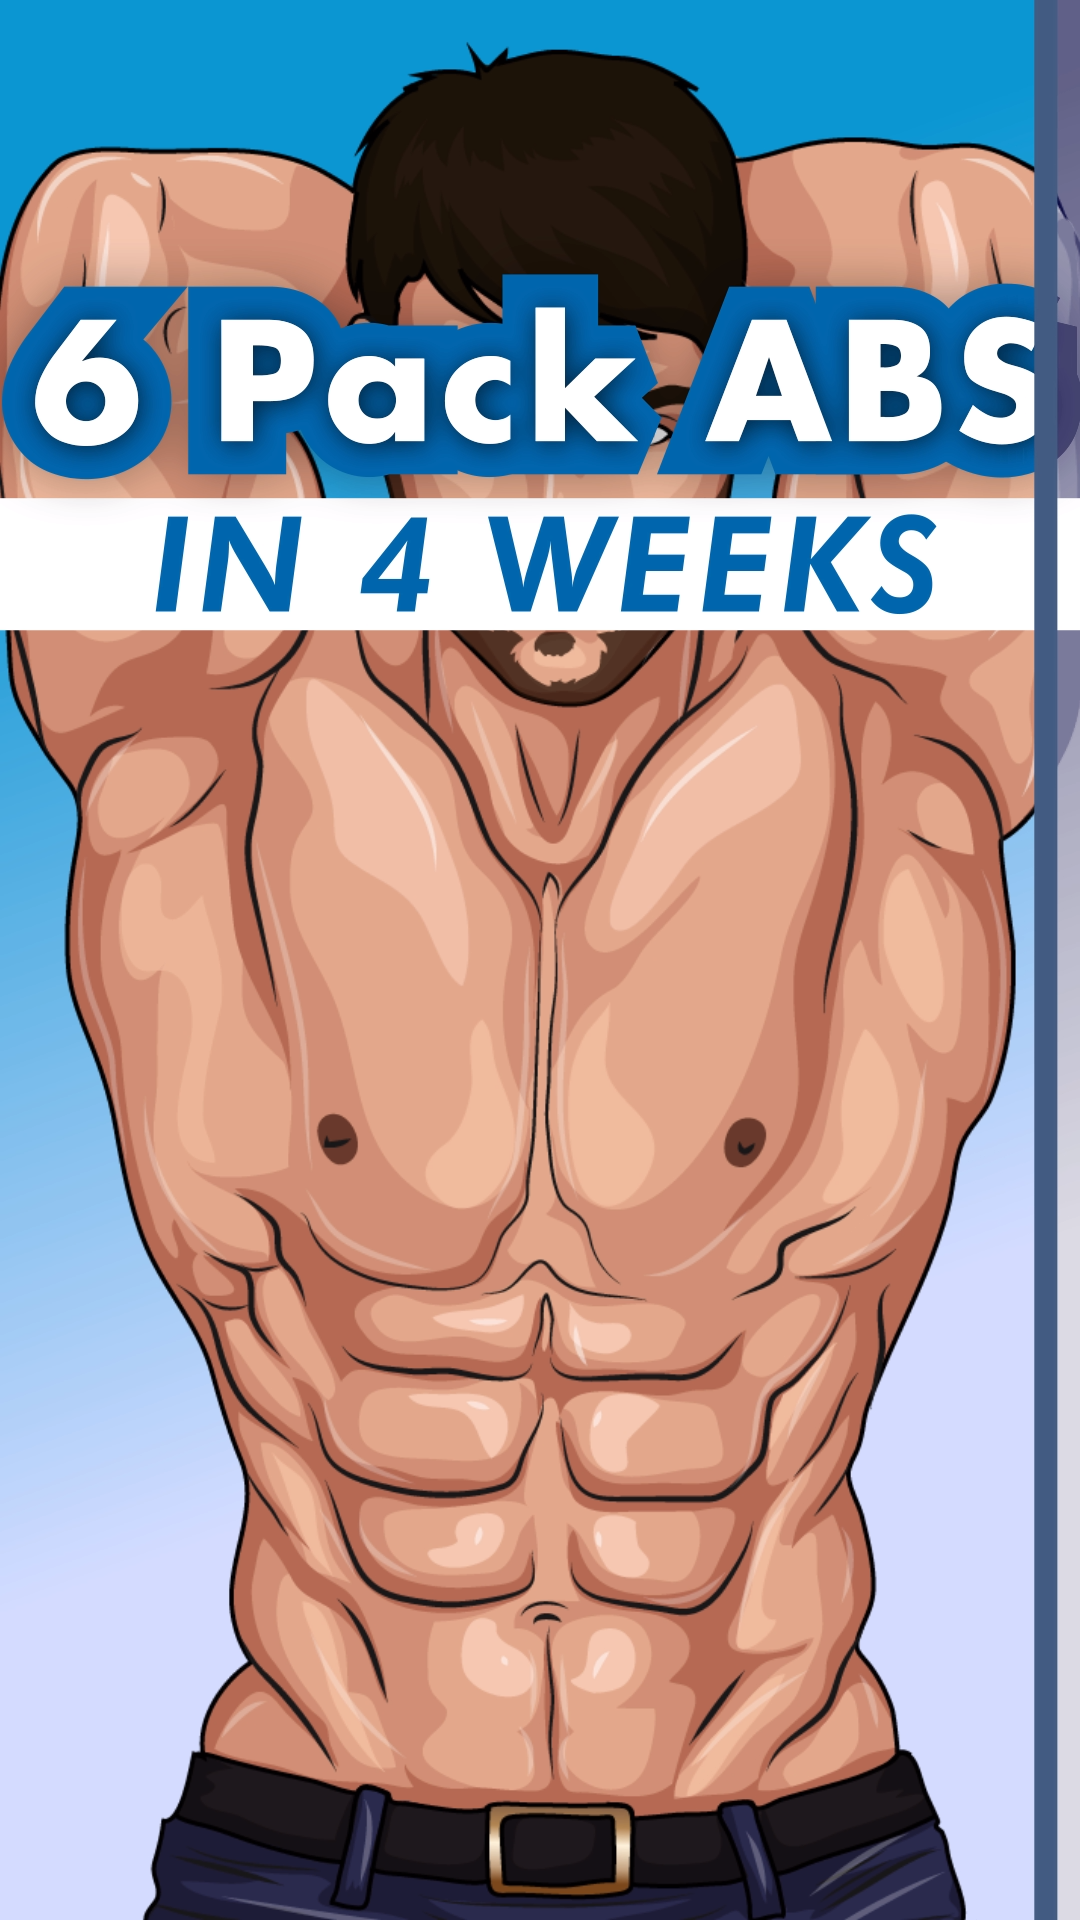 Simple Rules For Your Body To Get Slimmer Click To Download The App On App Store Now Fatburn Bur 6 Pack Workout Six Pack Abs Diet 6 Pack Abs Men